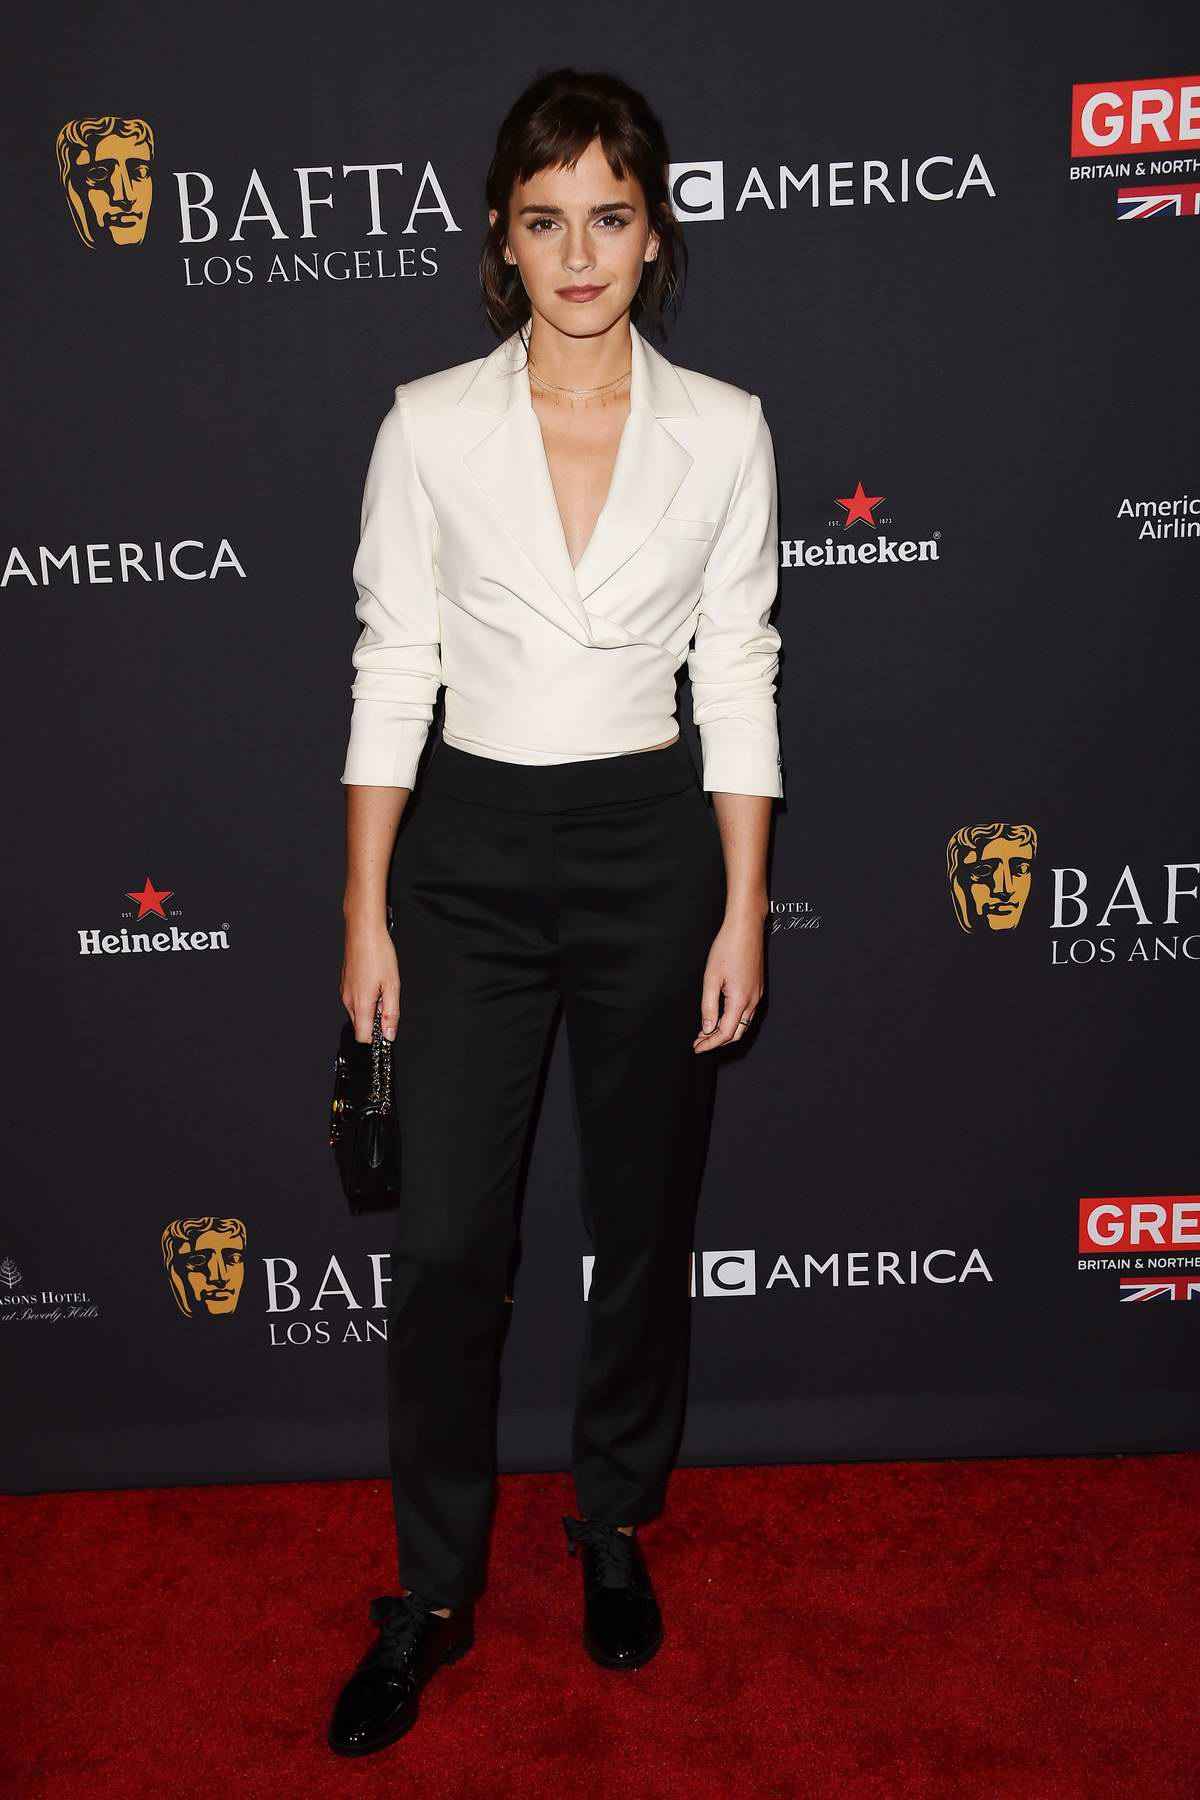 Emma Watson attends The BAFTA 2018 Los Angeles tea party at the Four Seasons Hotel in Beverly Hills, Los Angeles